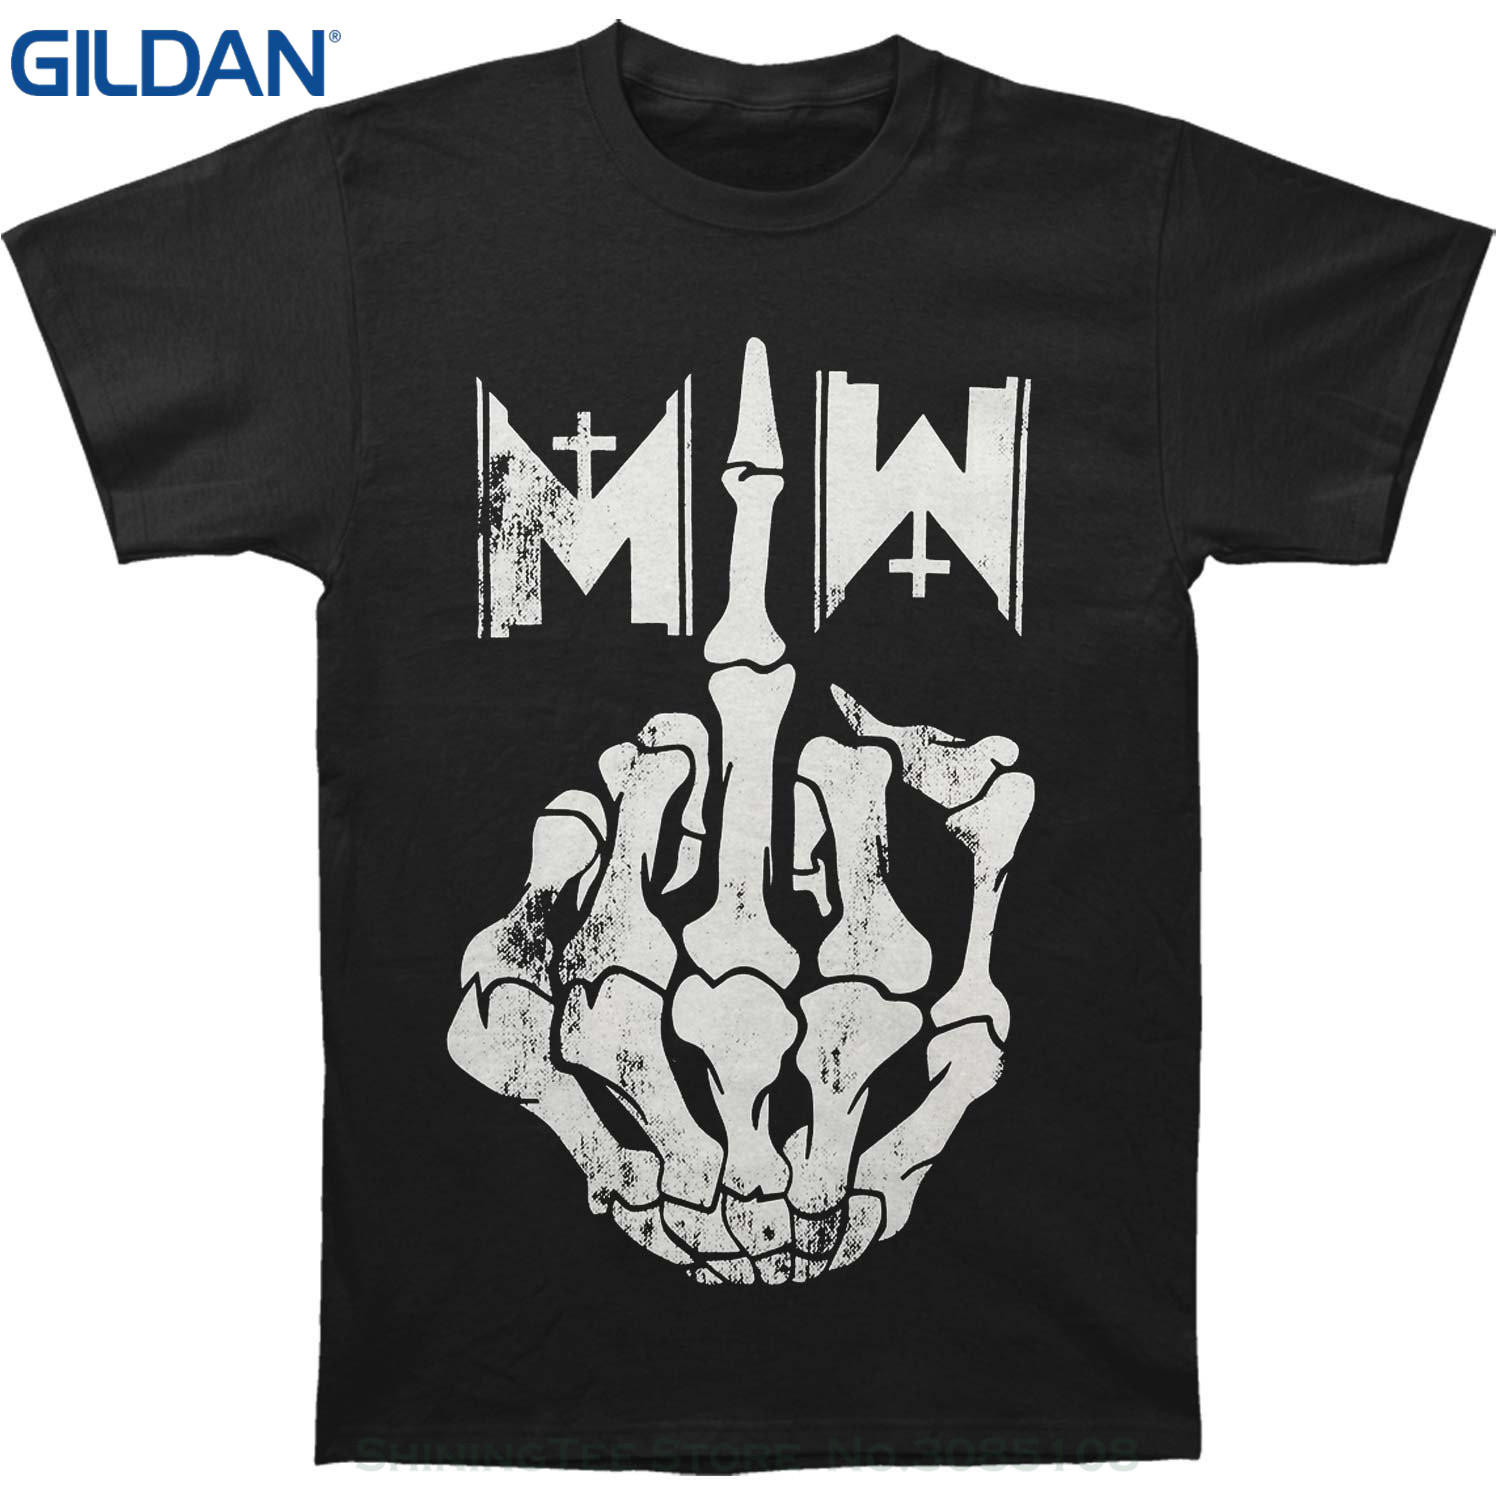 GILDAN Print T Shirt O-neck Short Motionless In White Mens Middle Finger T-shirt Black